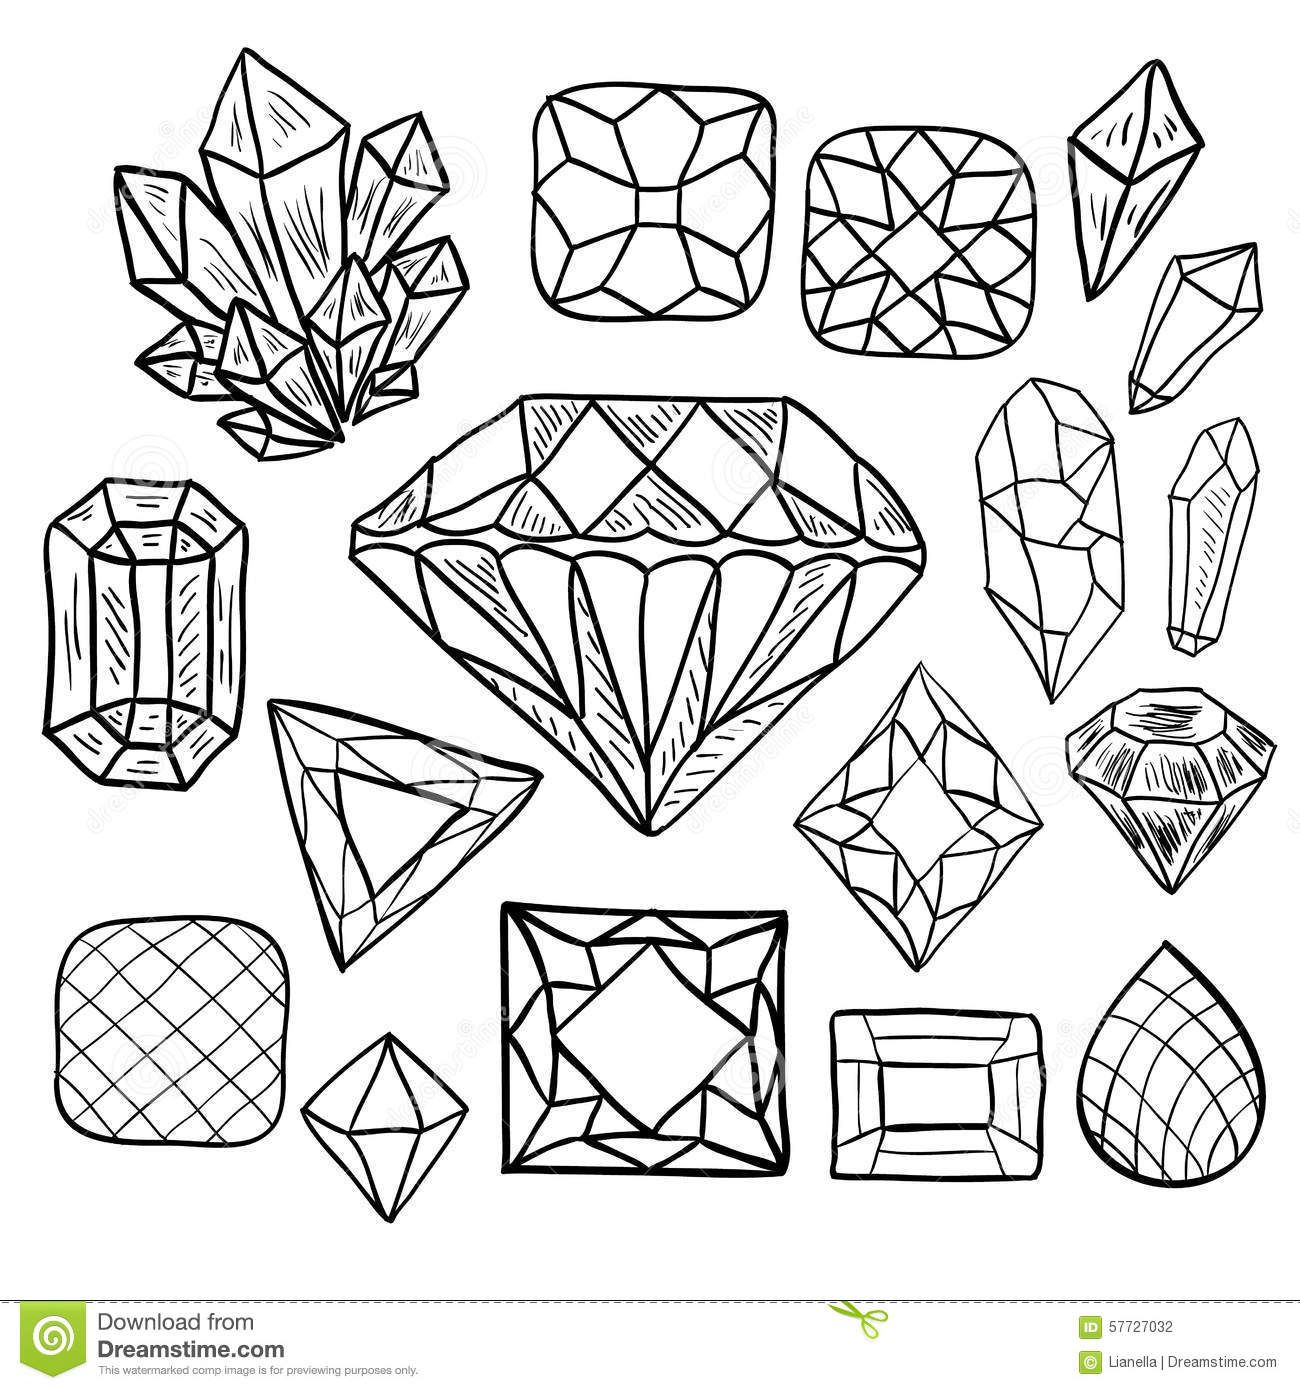 Draw Gemstone Shapes Shape Coloring Pages How To Draw Hands Crystal Drawing